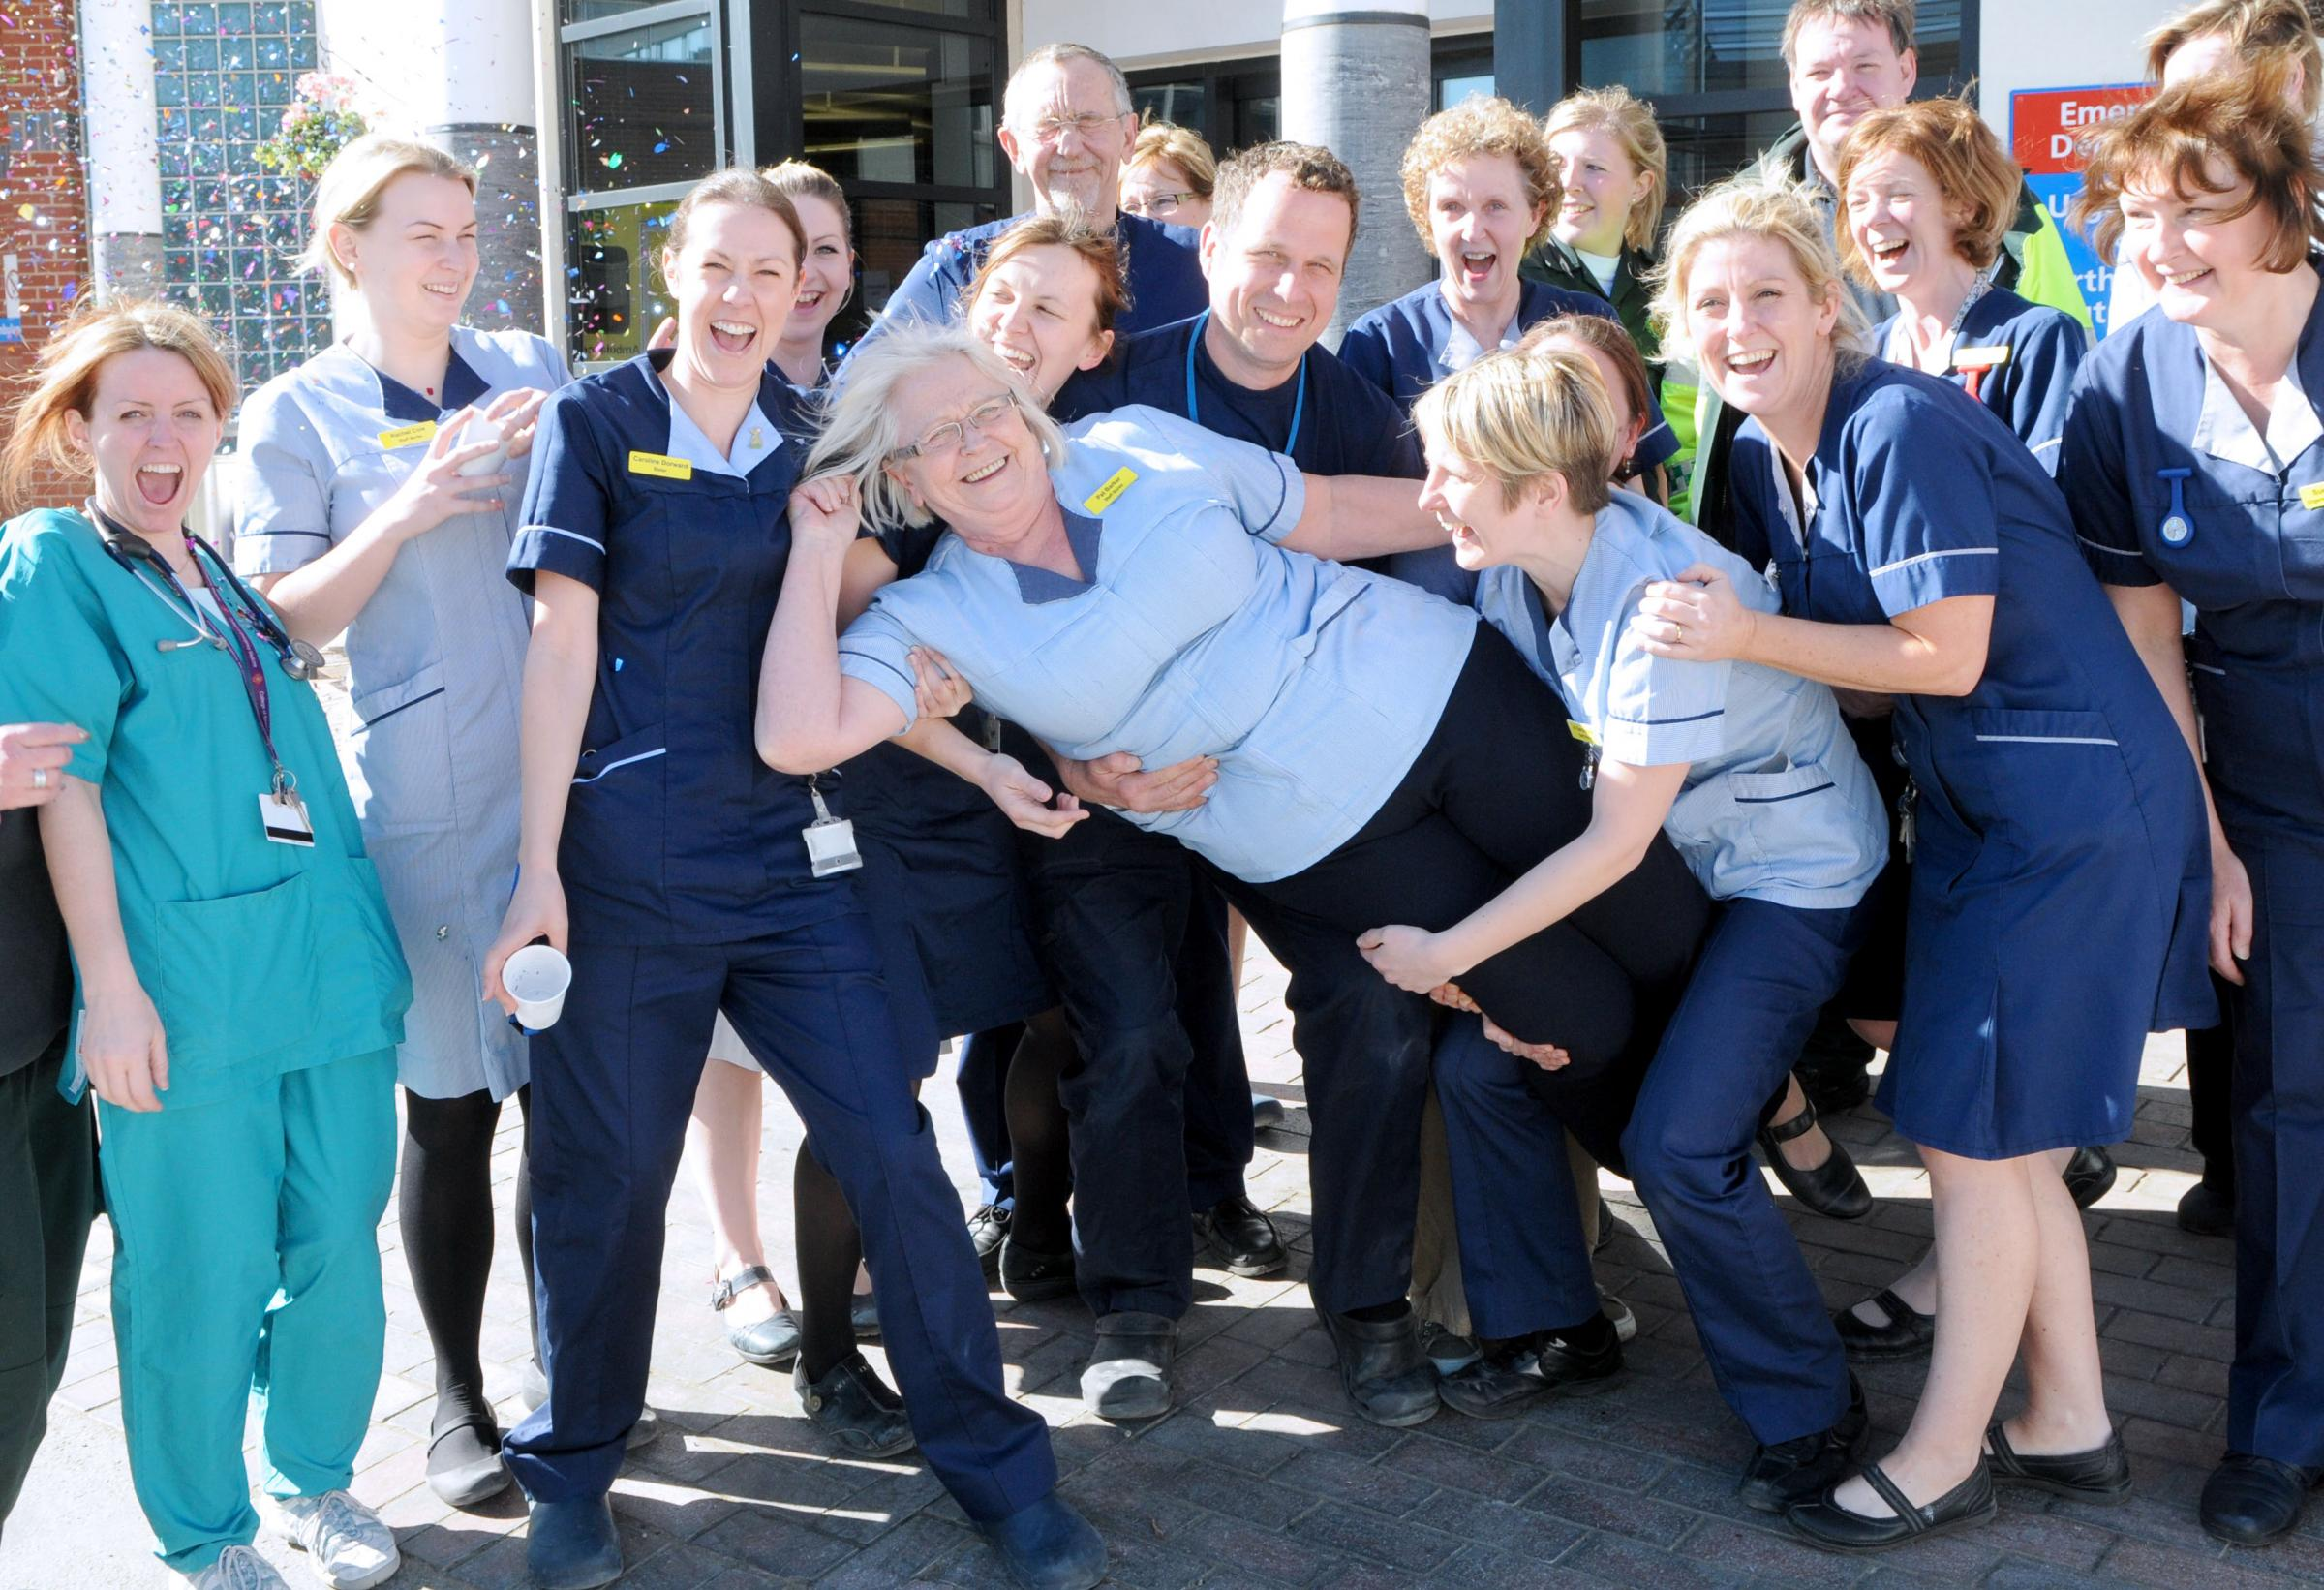 Pat Barker is carried out of the Emergency department, by some of her colleagues, at York Hospital.